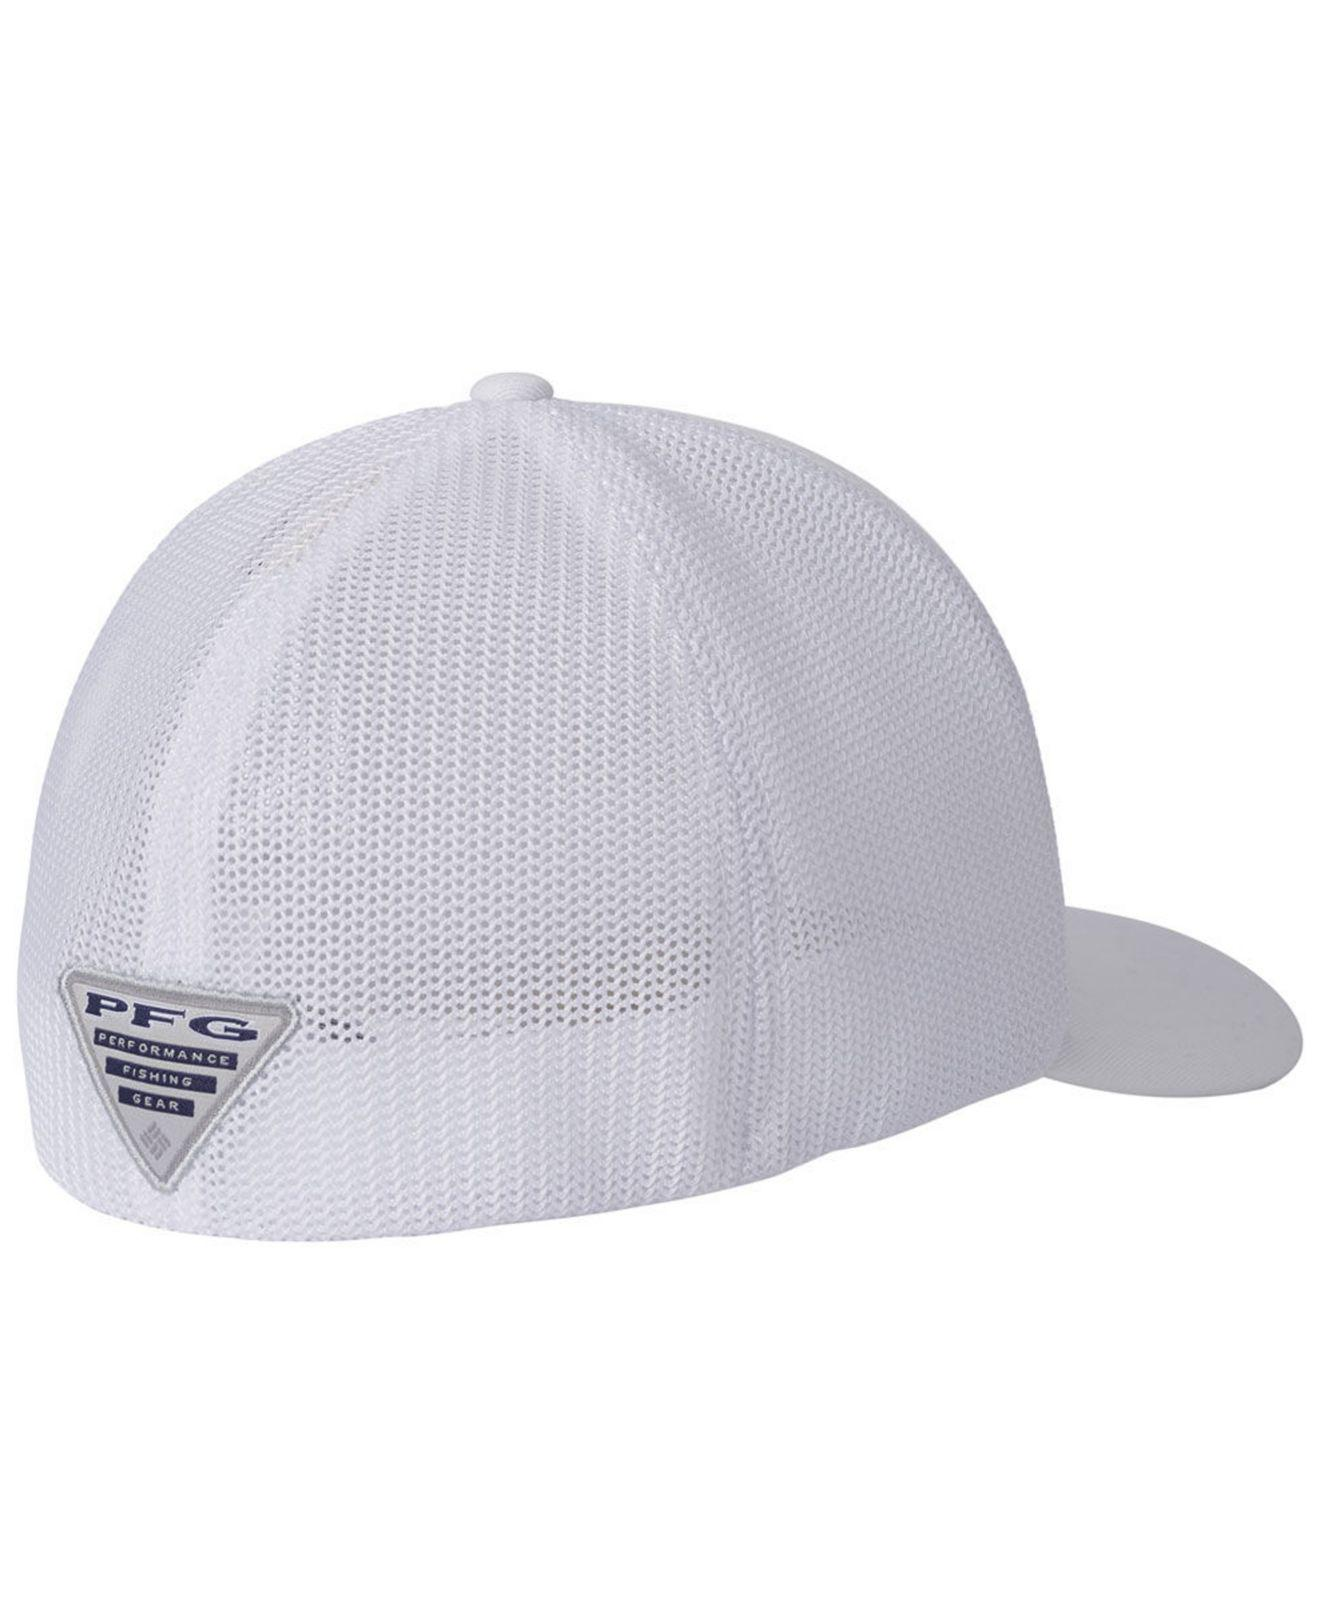 super specials sleek online for sale authentic alabama patagonia hat 76f3c 6f085